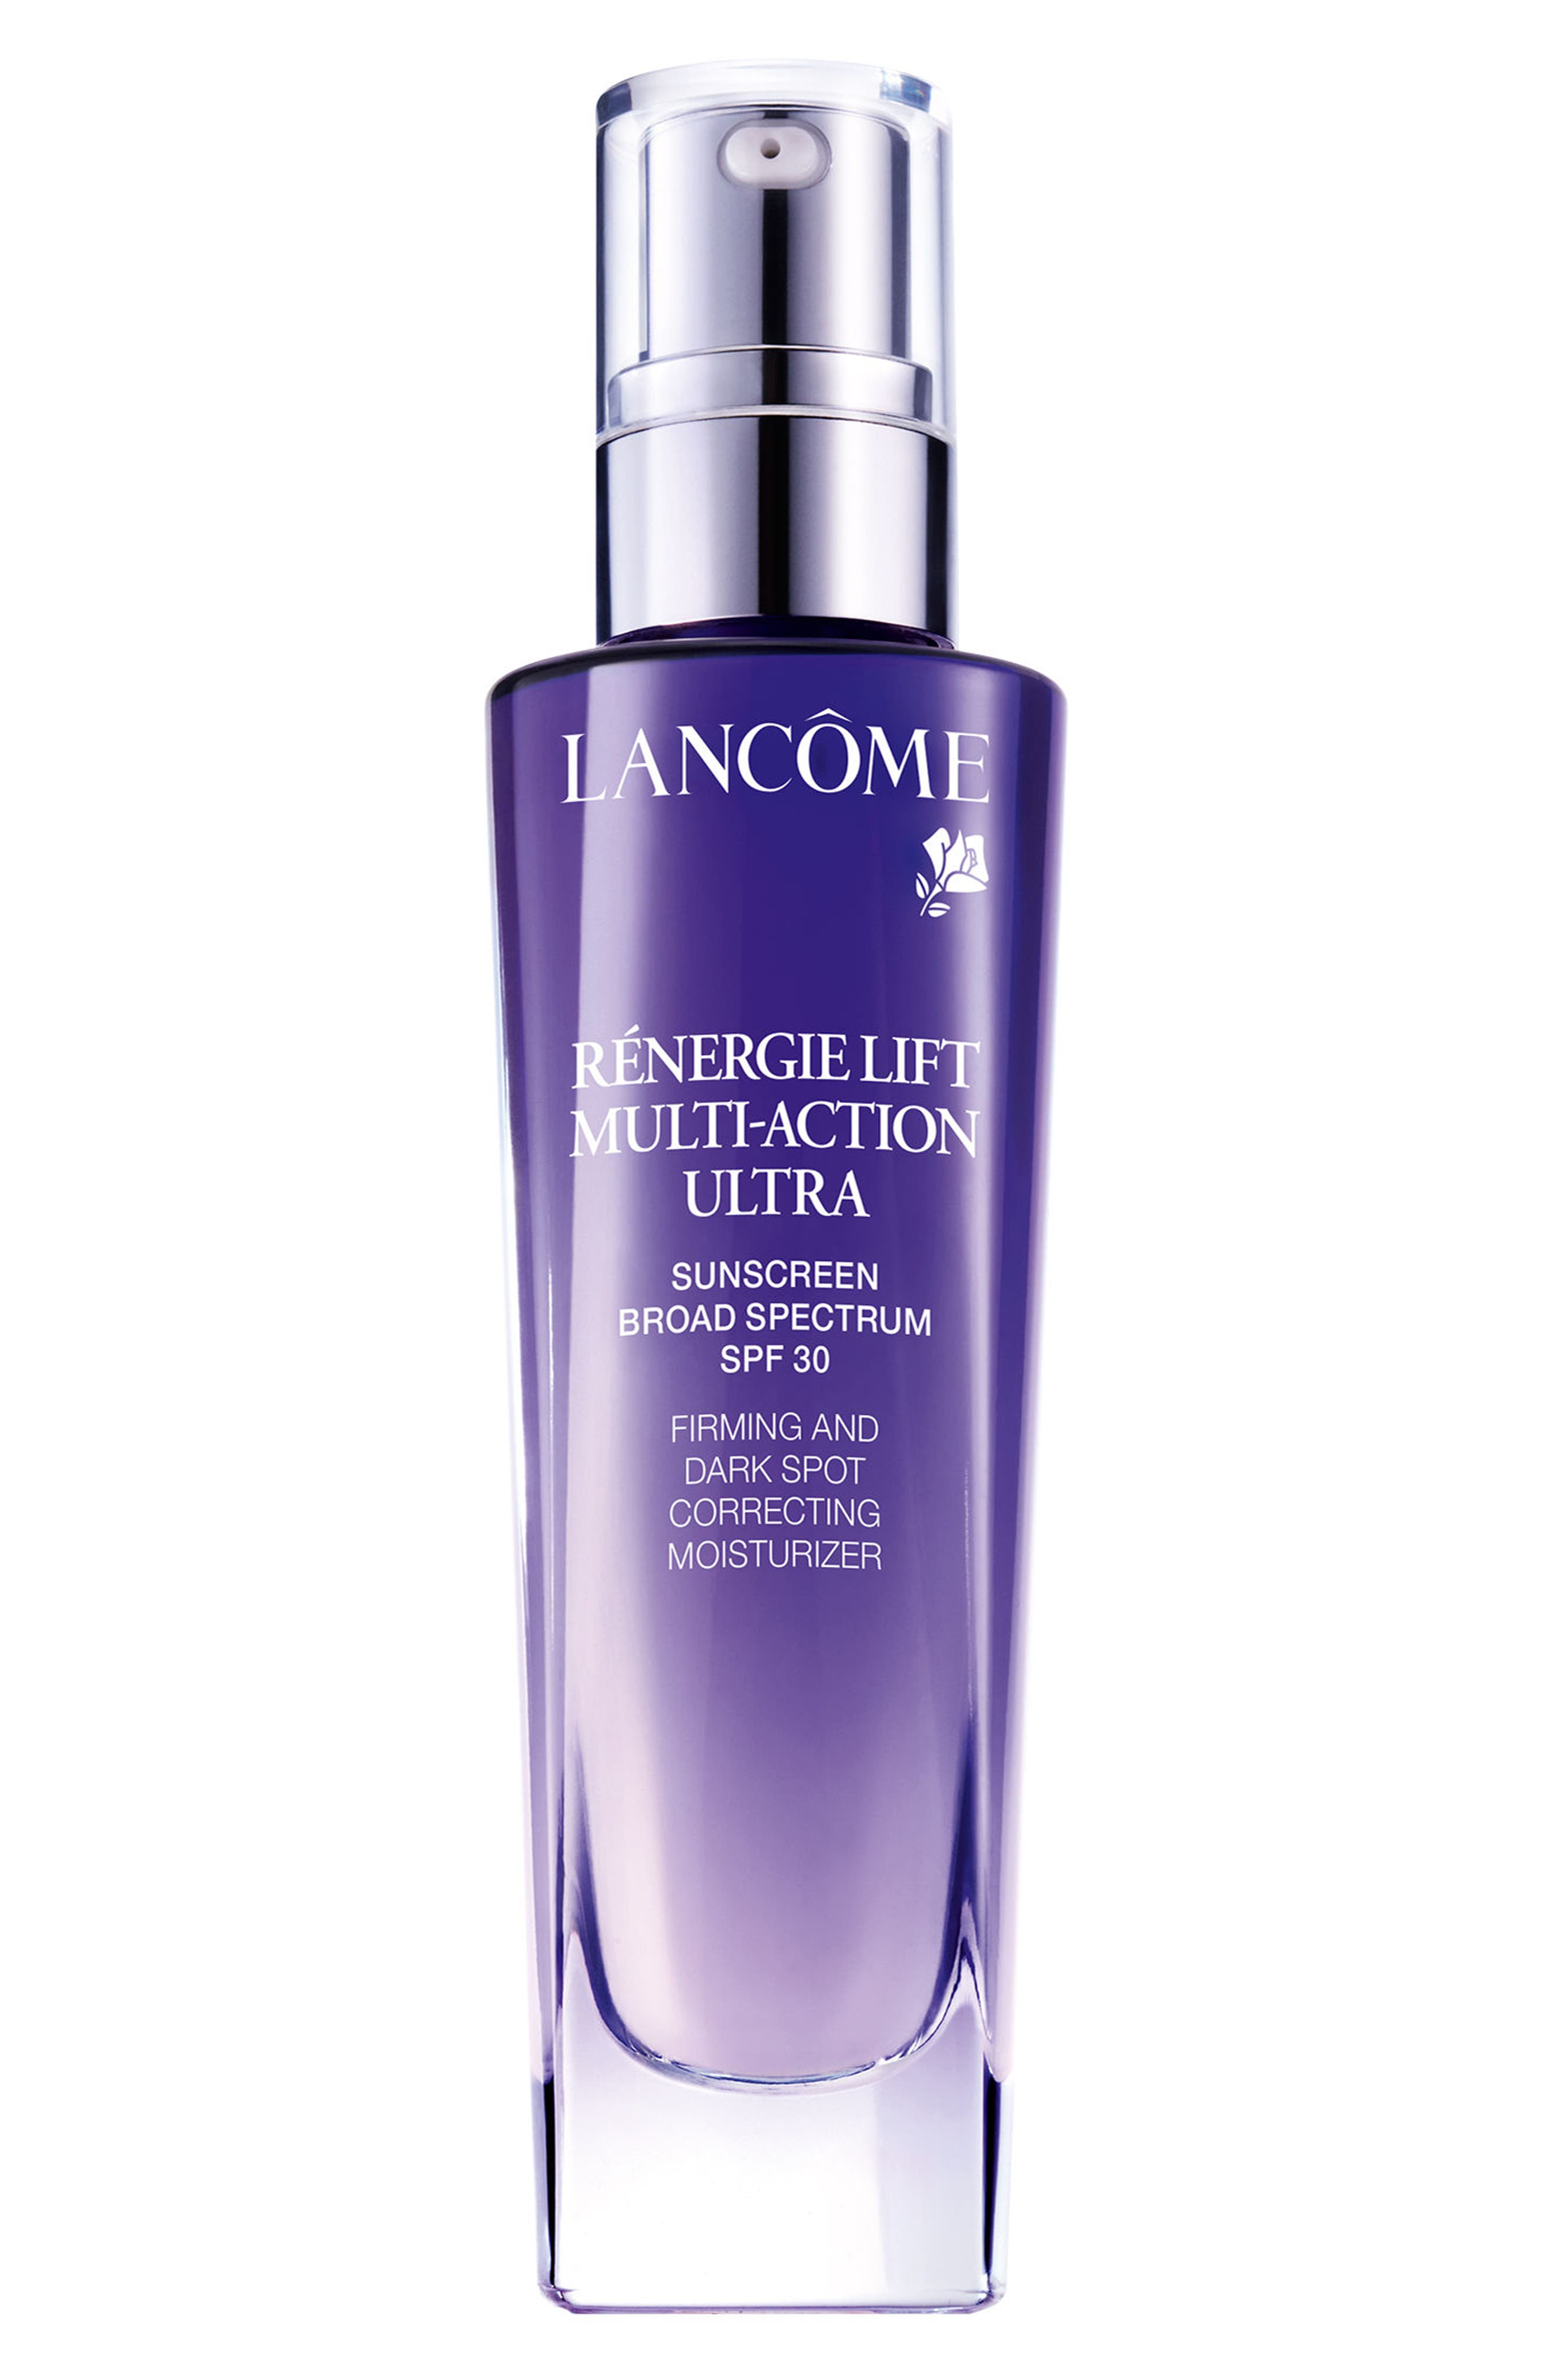 Lancôme Rénergie Lift Multi-Action Ultra Firming and Dark Spot Correcting Moisturizer SPF 30